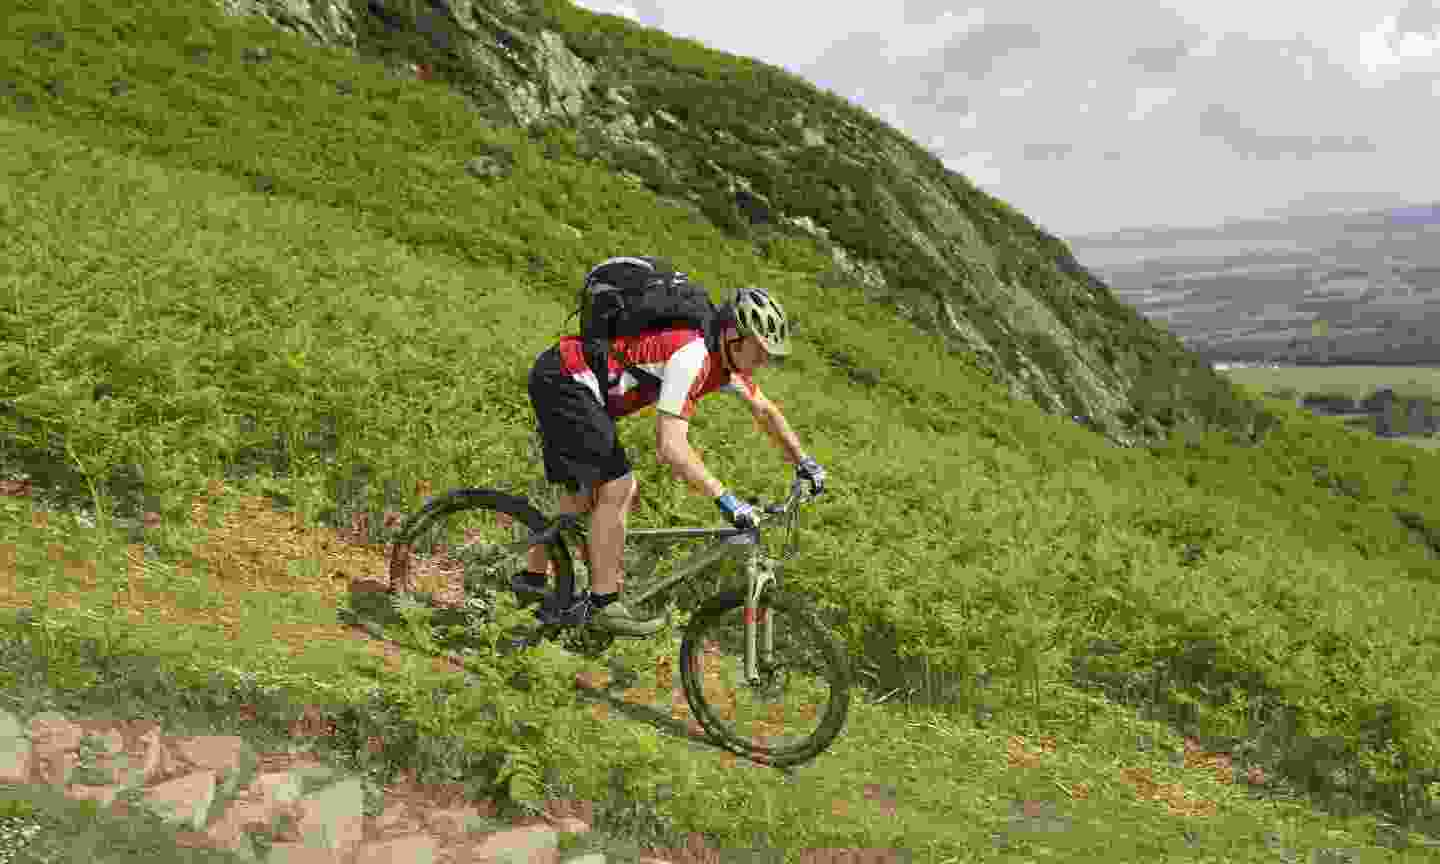 Scotland's hillsides are exhilarating to explore by bike (Dreamstime)